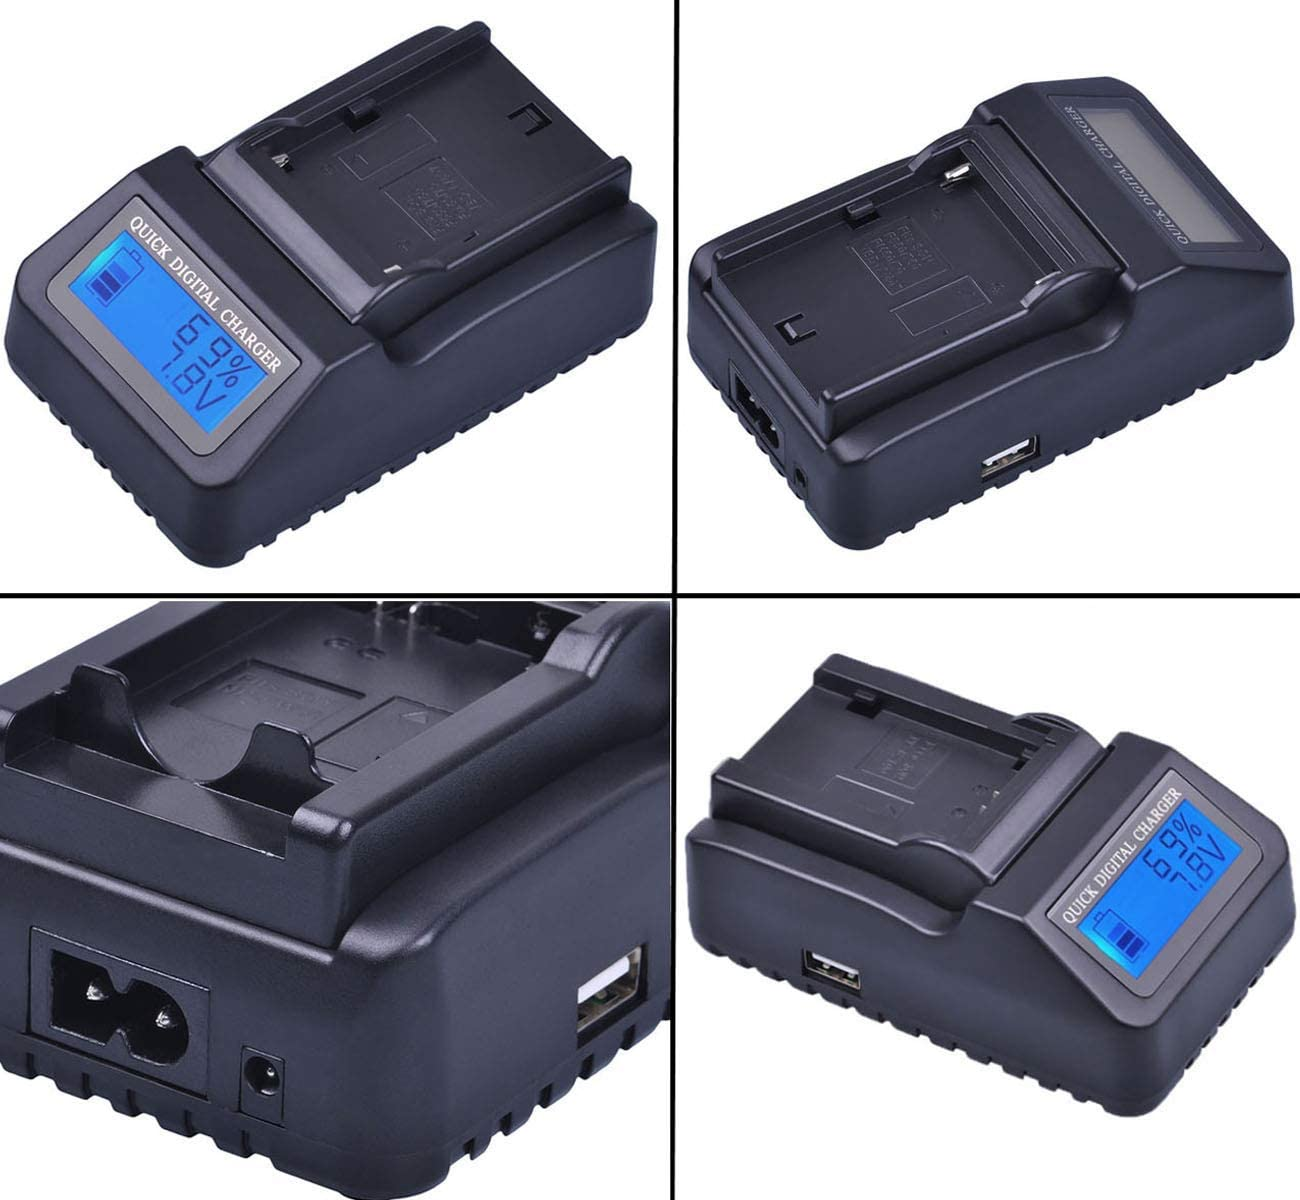 GZ-MG330U GZ-MG430U GZ-MG670U GZ-MG630U GZ-MG680U GZ-MG730U Camcorder GZ-MG230U Battery Charger for JVC Everio GZ-MG130U GZ-MG360U GZ-MG340U GZ-MG650U